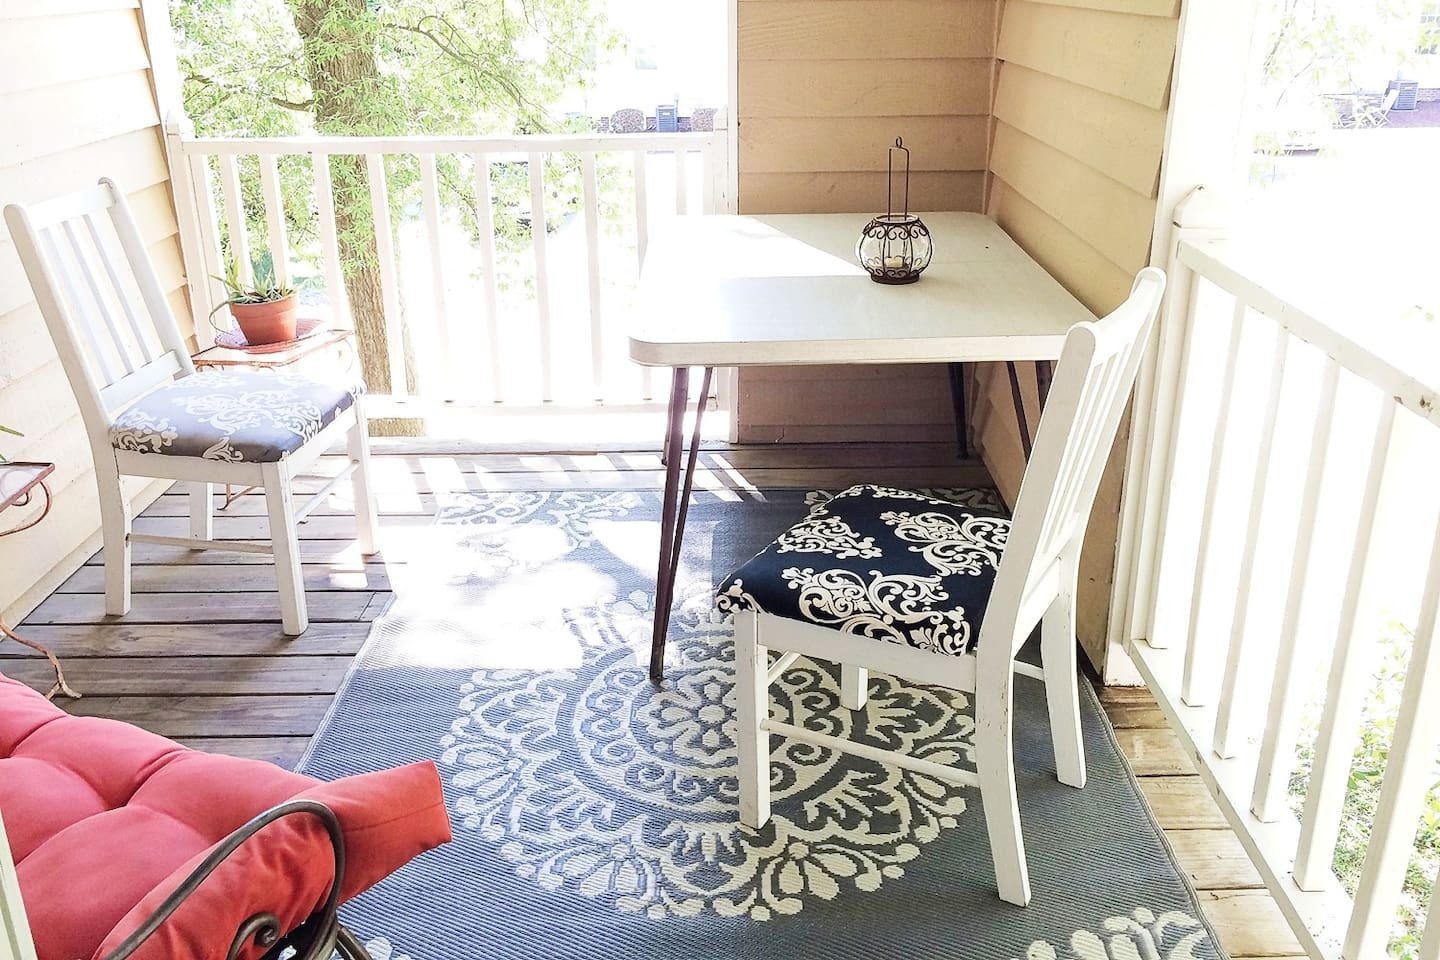 The back door between the DR and Kit leads to a great porch large enough to dine, lounge or work - my favorite place!